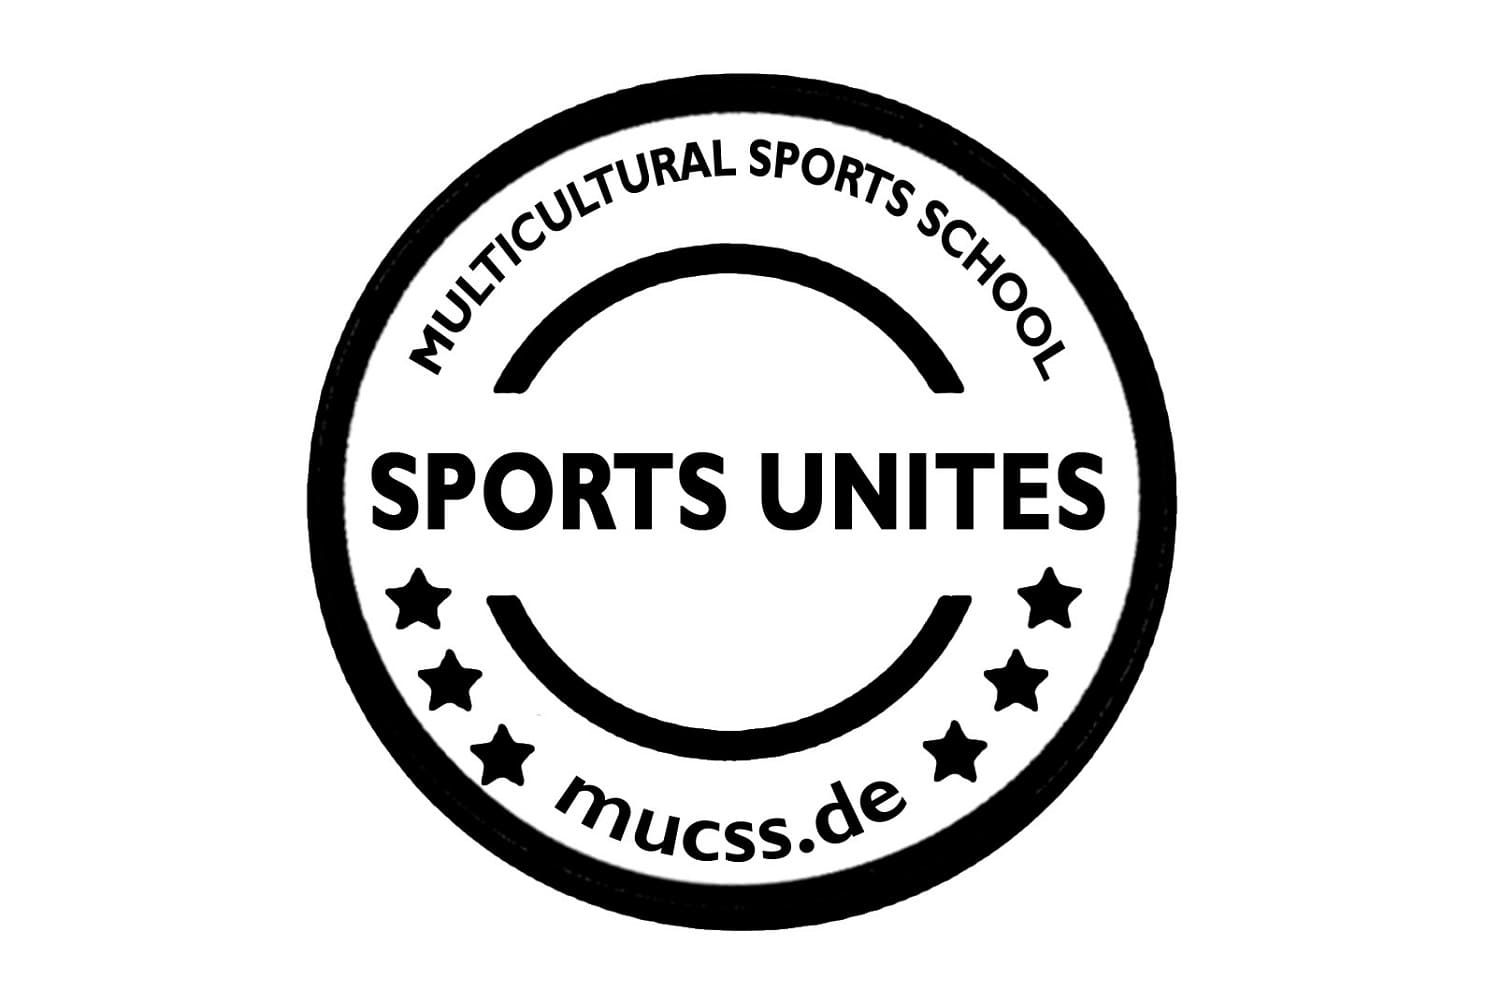 MUCSS-ENGLISH-SPORT-SCHOOL-Mucss_Radevu-min.jpg